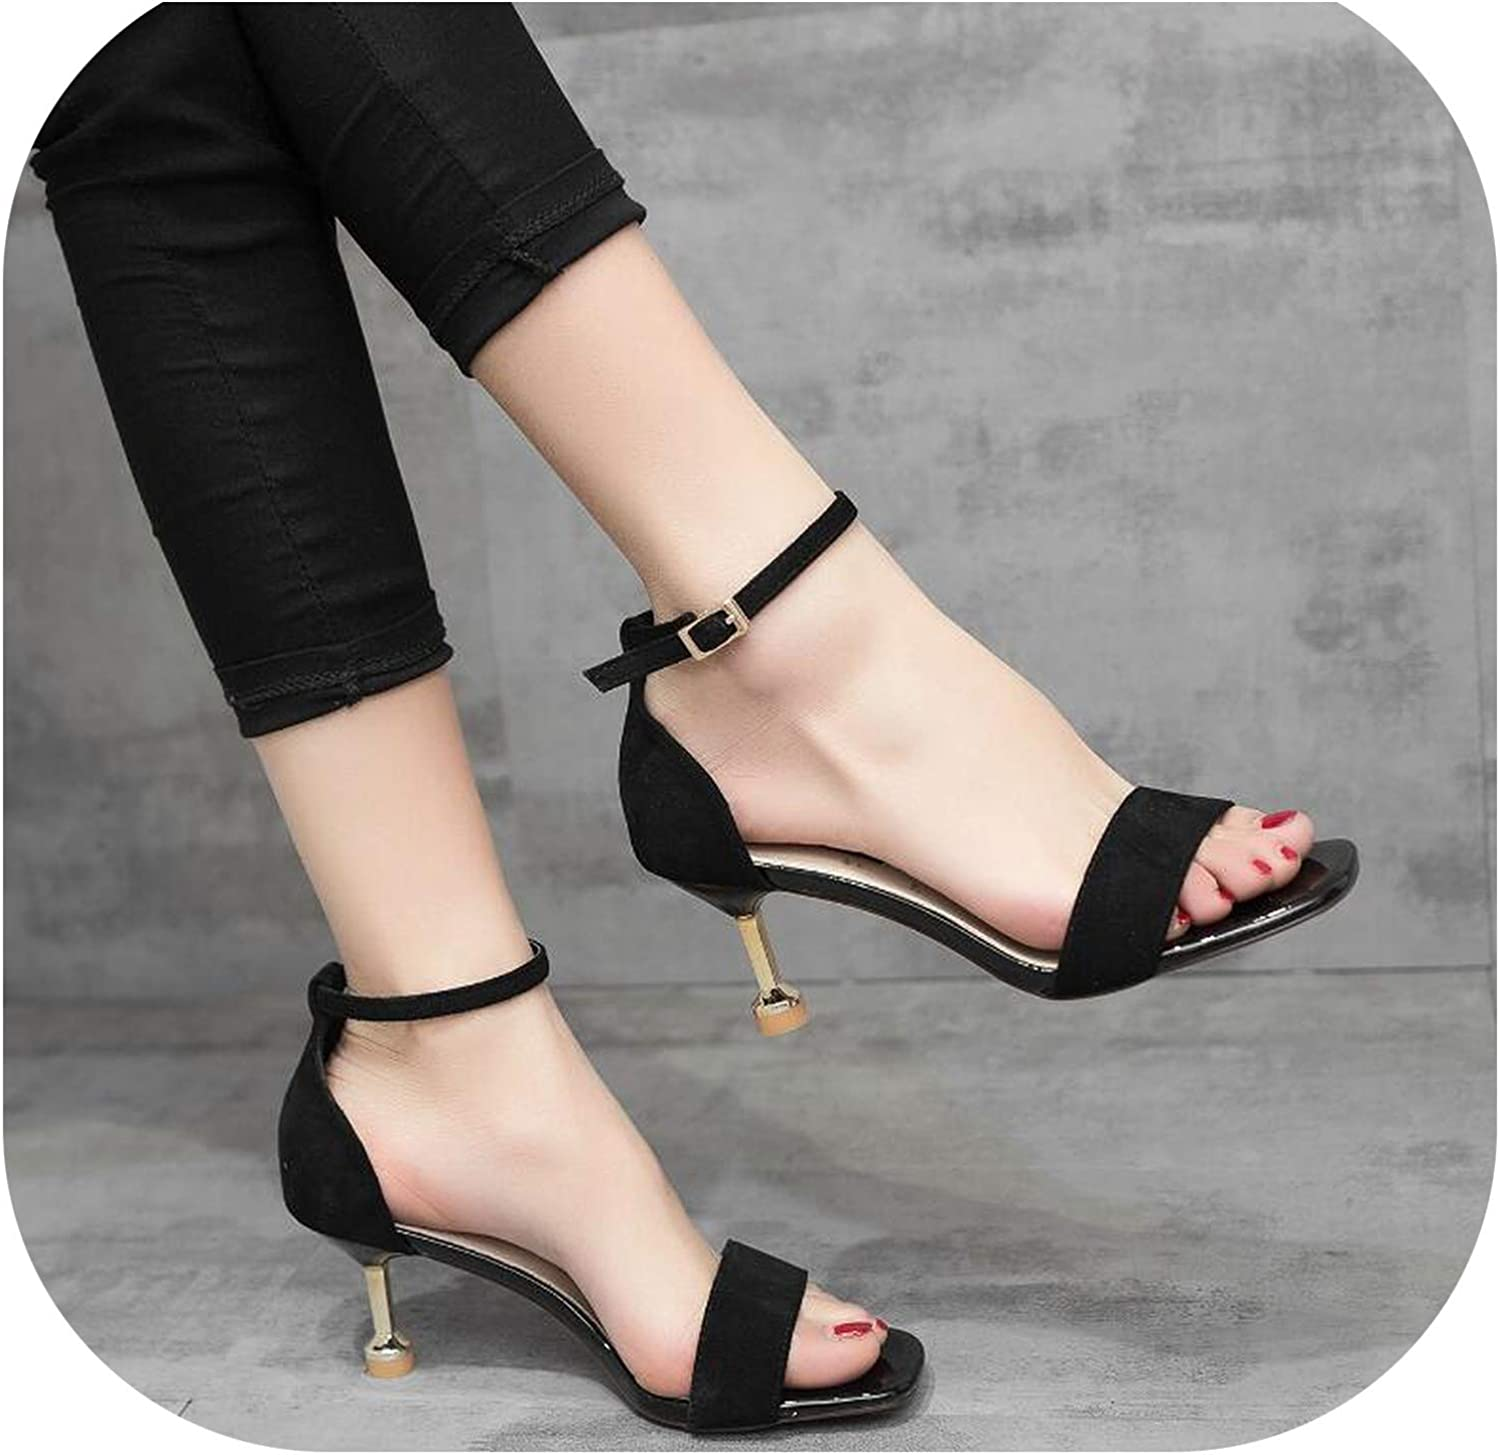 Meiguiyuan 2019 high Square Cover Heels Ankle Buckle Strap Concise Casual Fish Mouth Summer Women Sandals